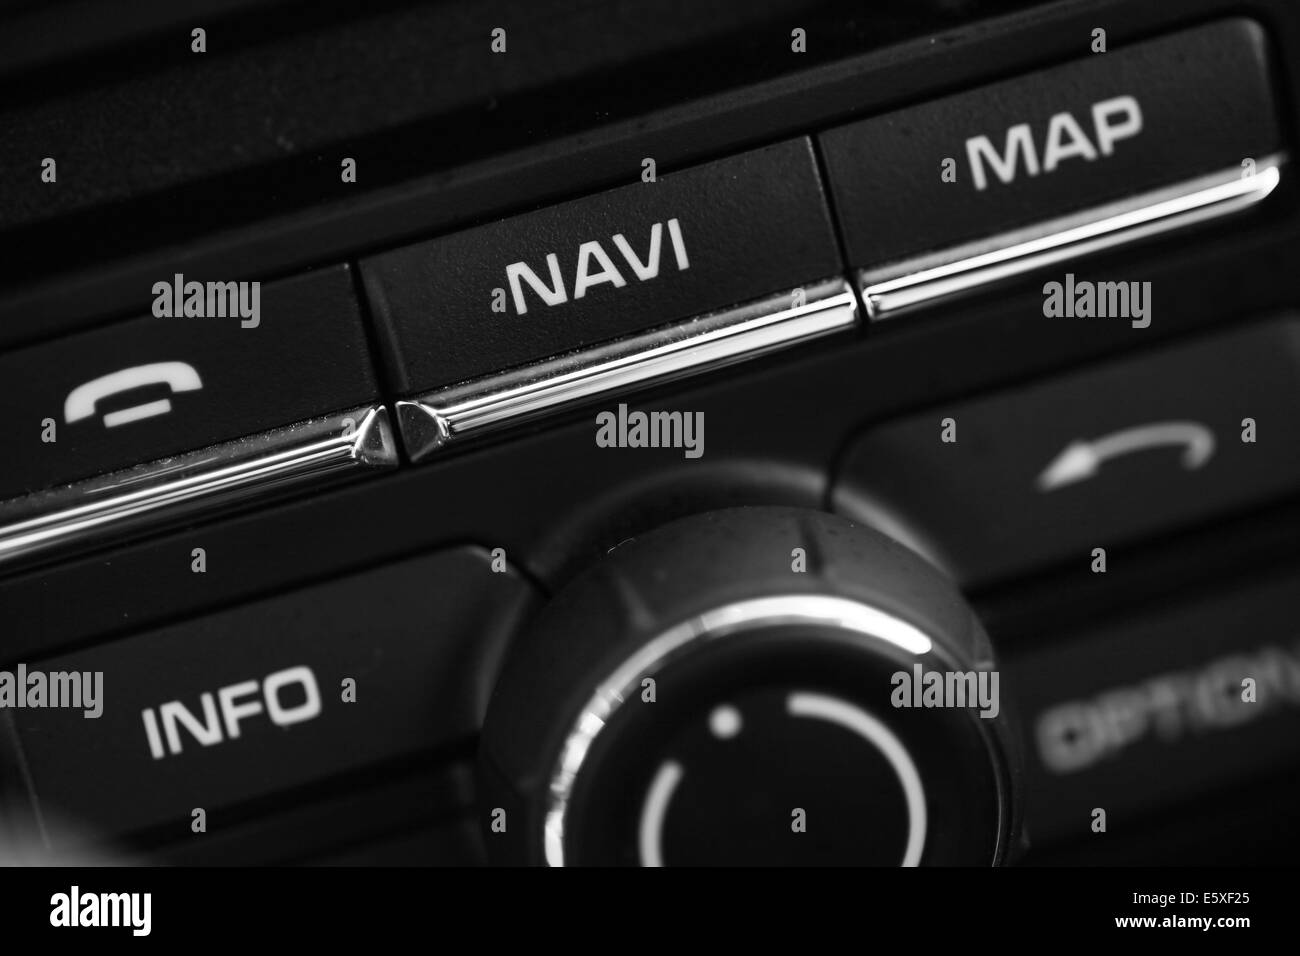 Detail on some buttons inside a car. - Stock Image